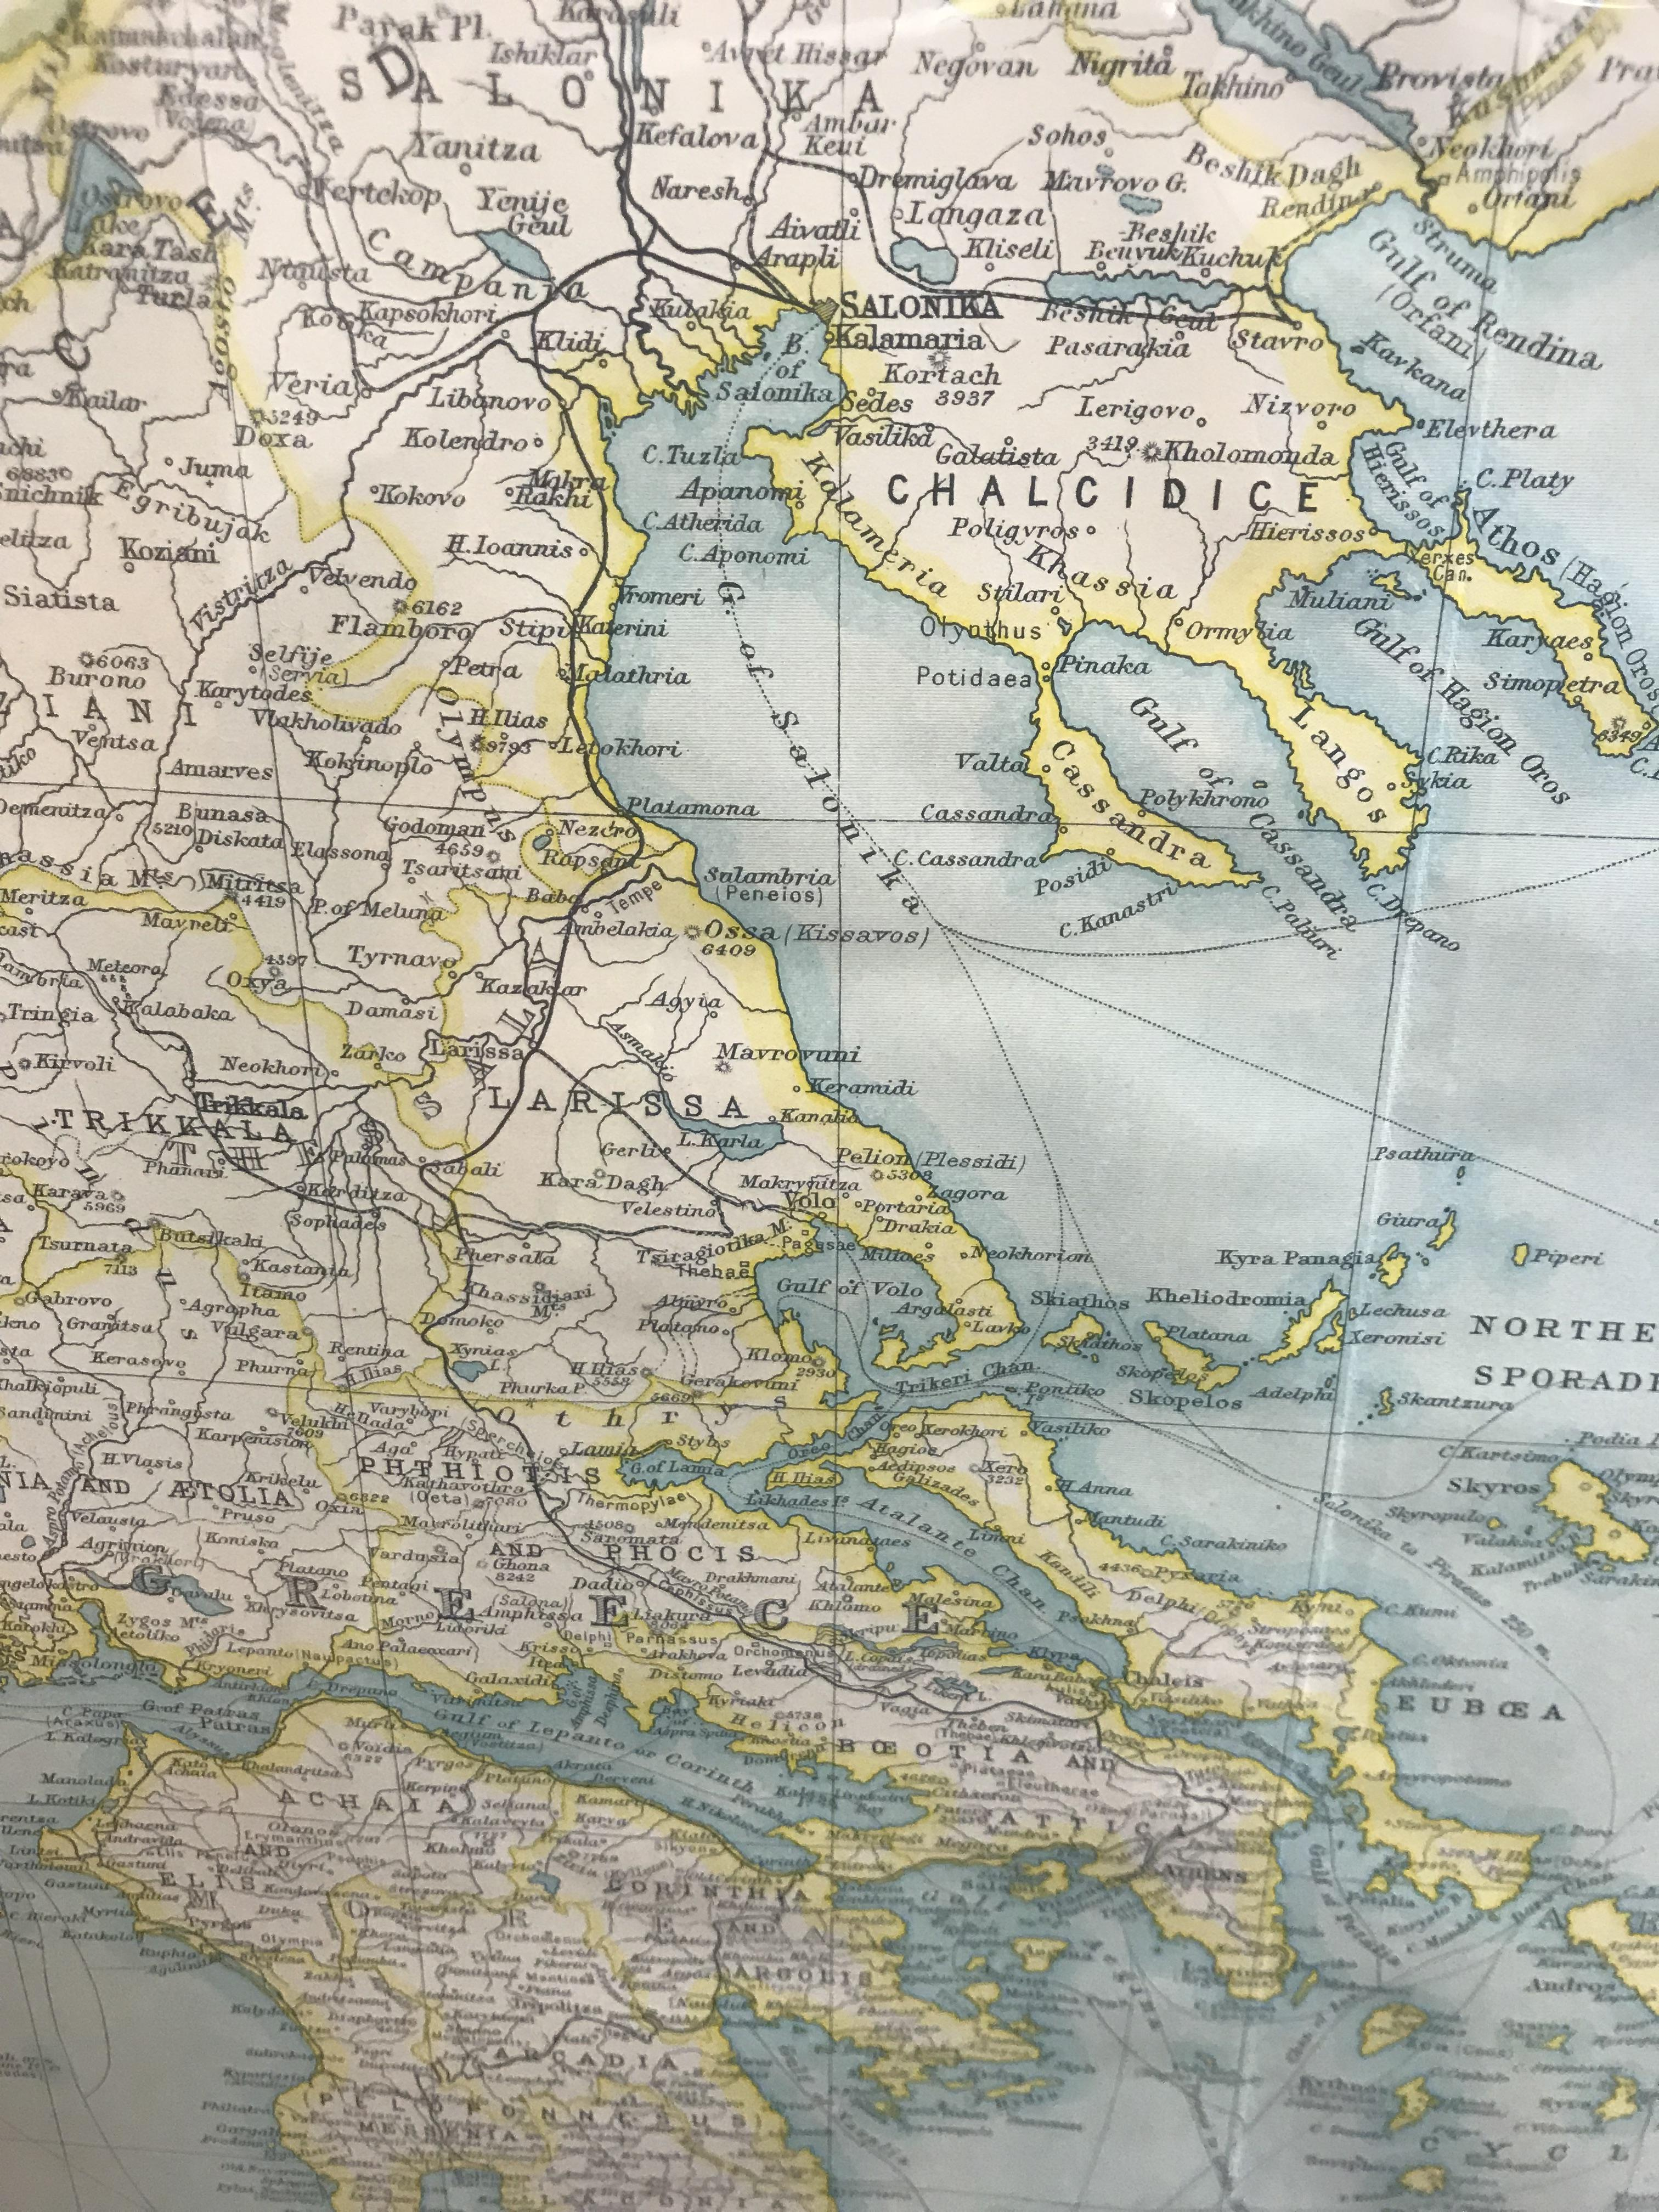 1924 Map of Greece